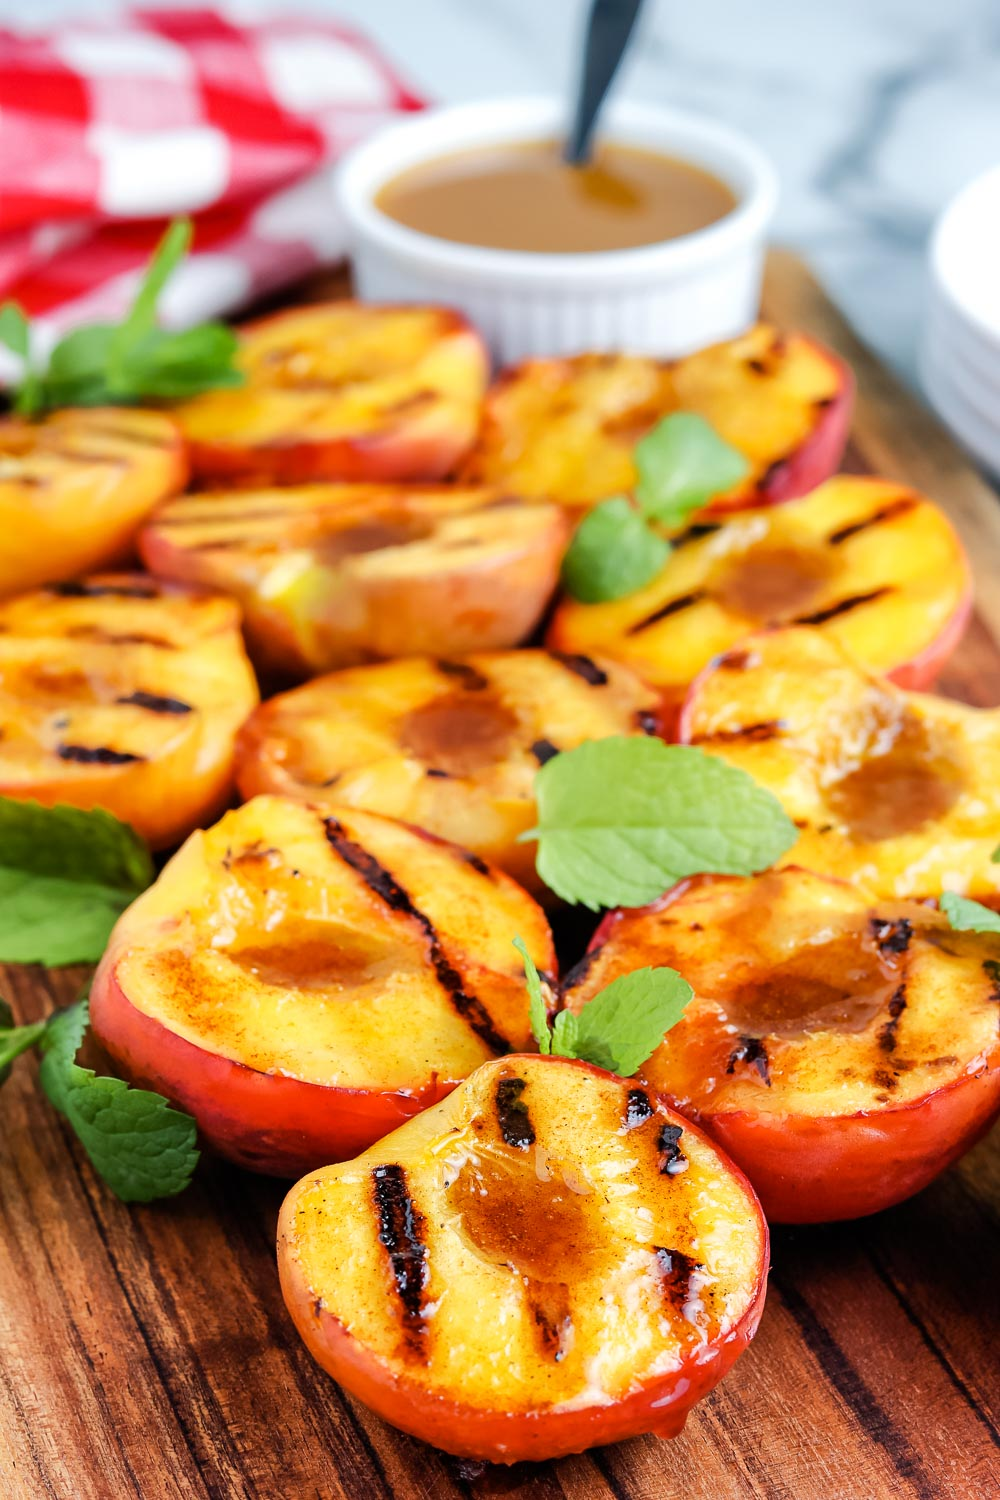 The finished Grilled Peaches on a wooden cutting board.